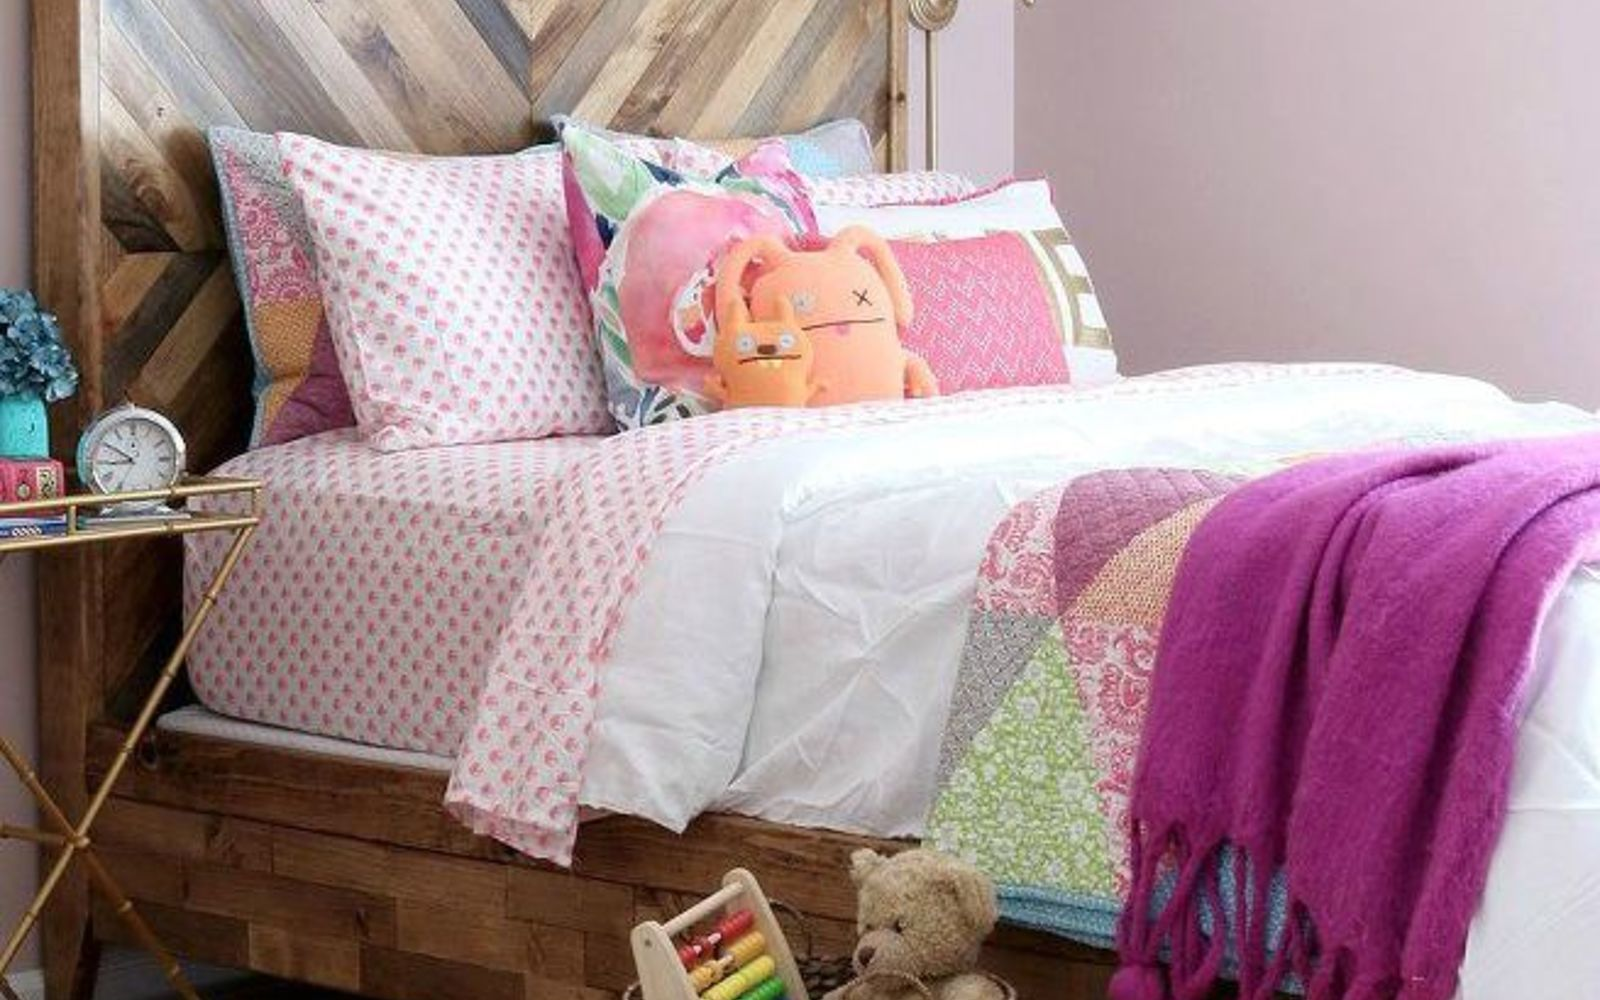 s 11 designer decor looks you can make on the cheap, crafts, home decor, Chevron Reclaimed Bed Frame West Elm